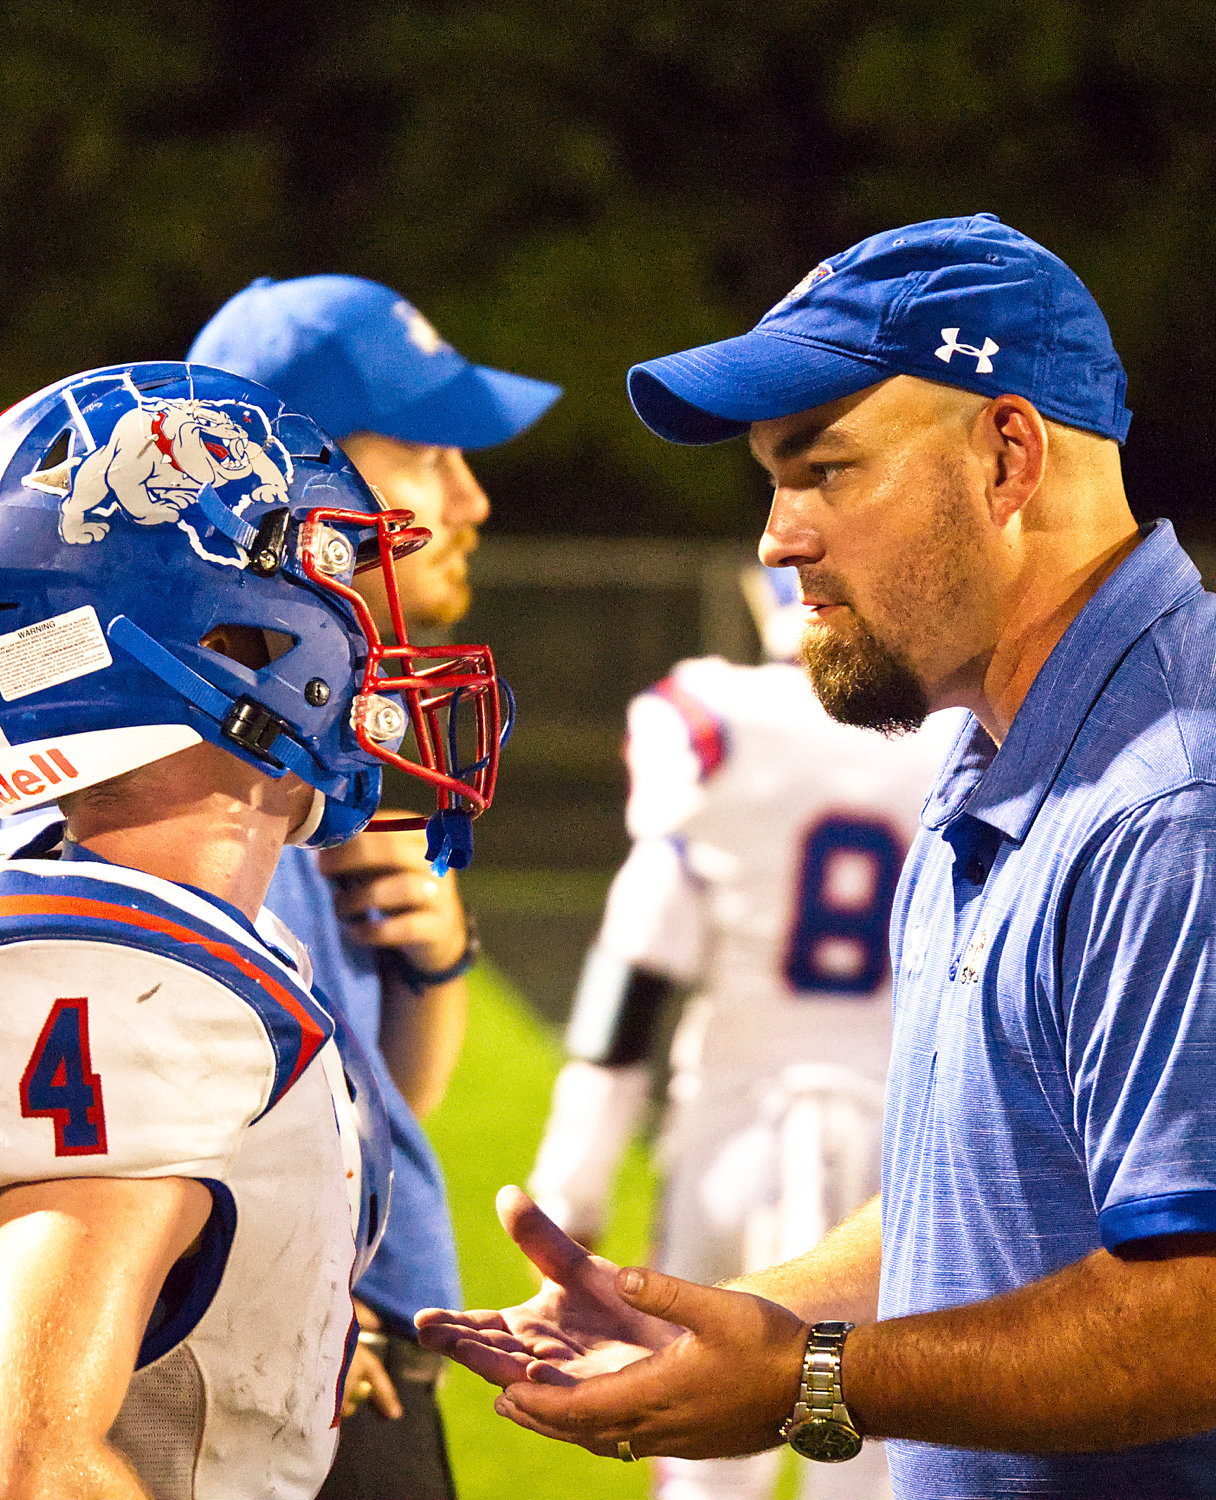 Bryan Morris gets some encouragement from Quitman coach Ryan Tierney.